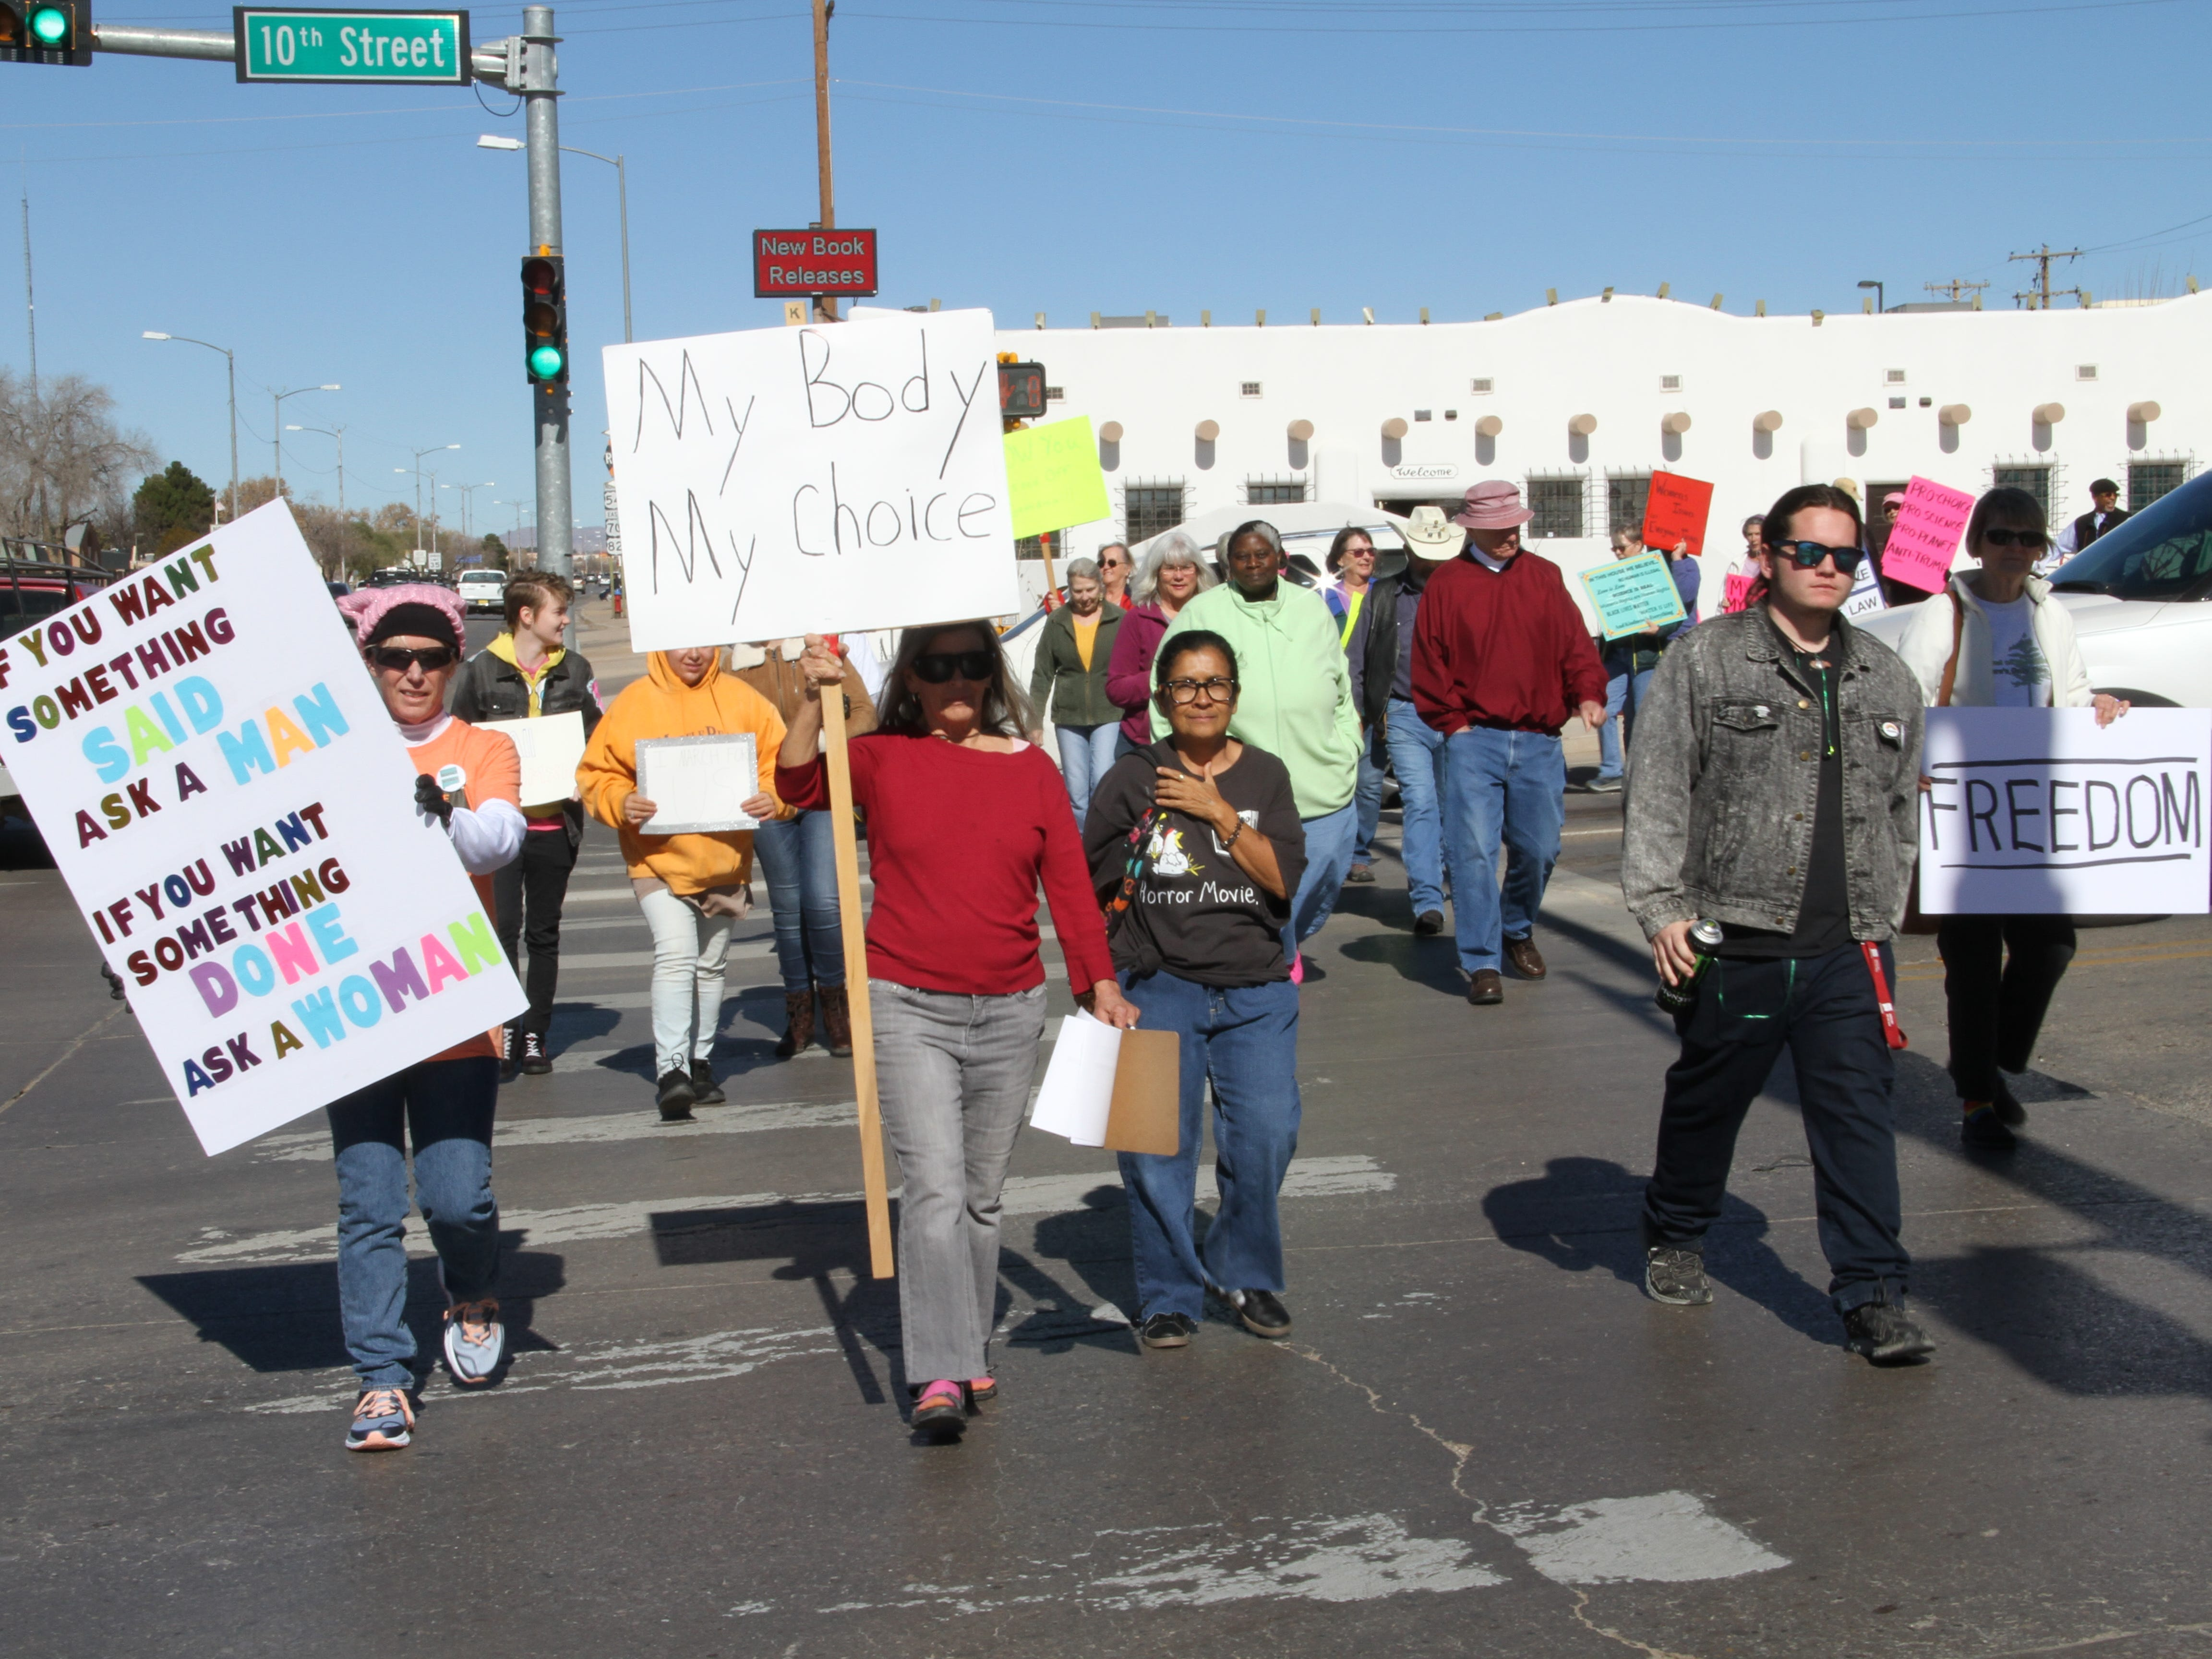 Alamogordo We Trust Women marchers cross 10th Street to Founders Park in solidarity with the national Women's March Saturday.